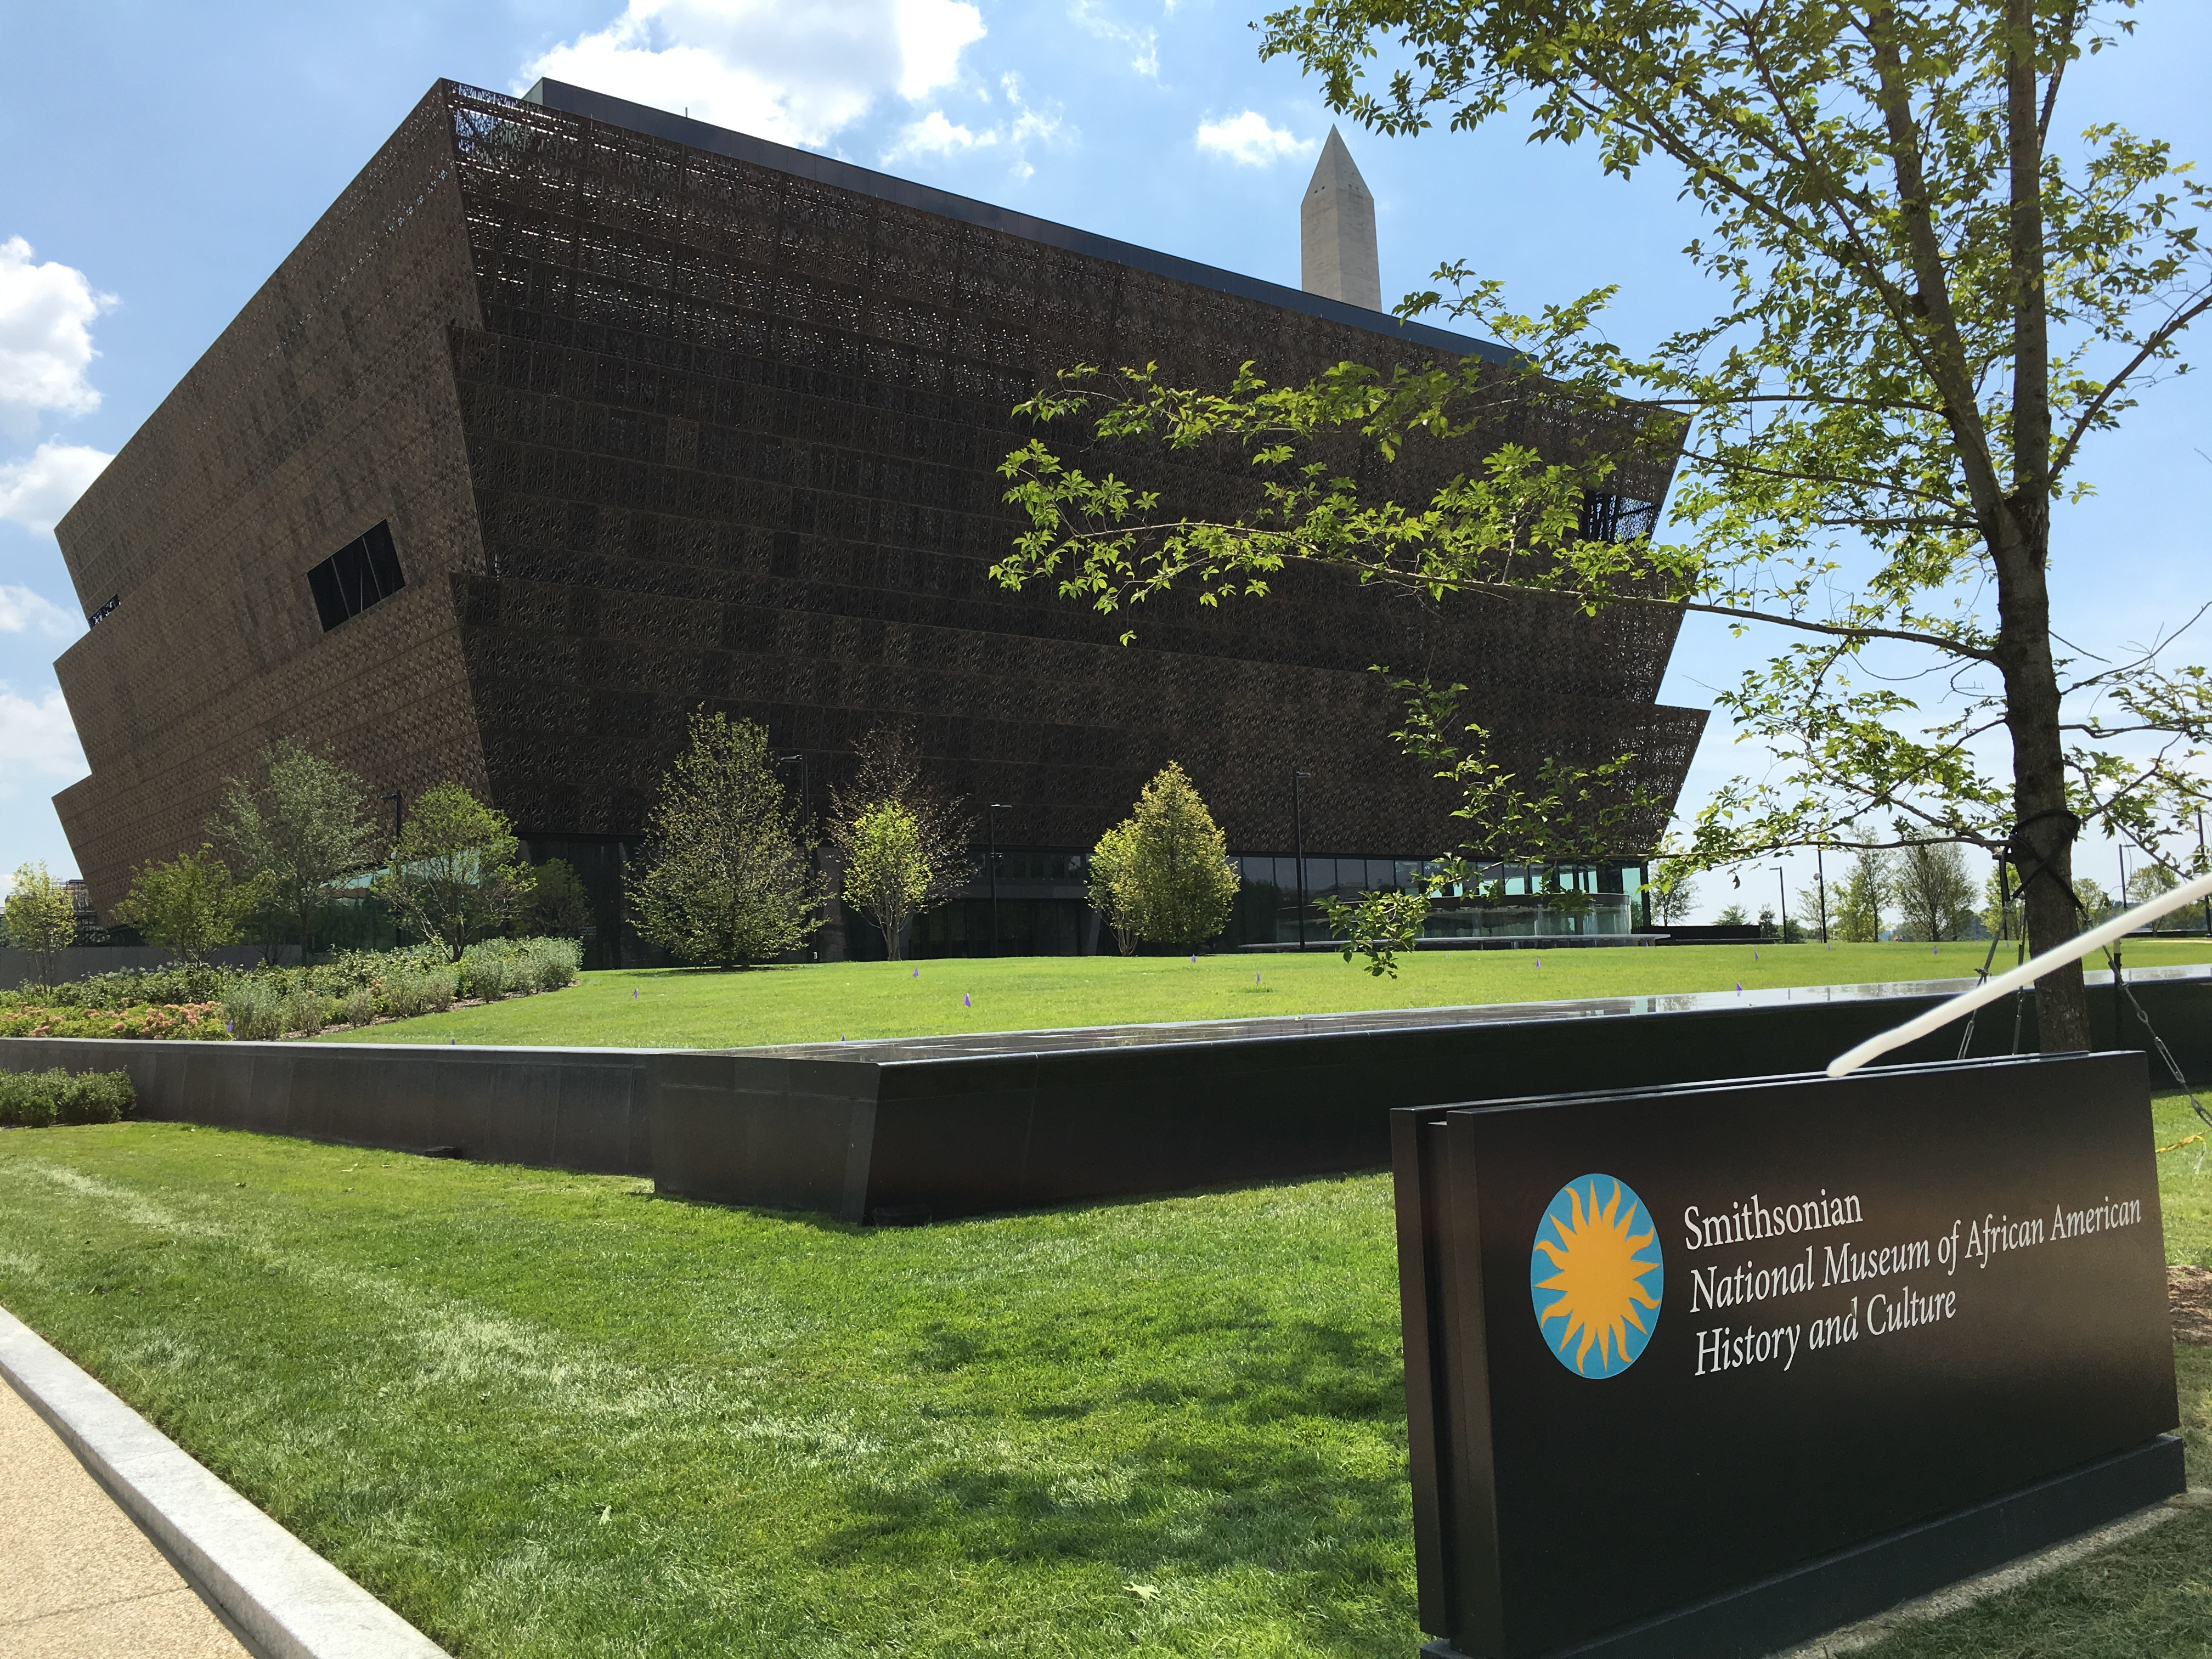 Exterior of the Smithsonian National Museum of African American History and Culture, Washington, D.C. Photo taken on July 20, 2016